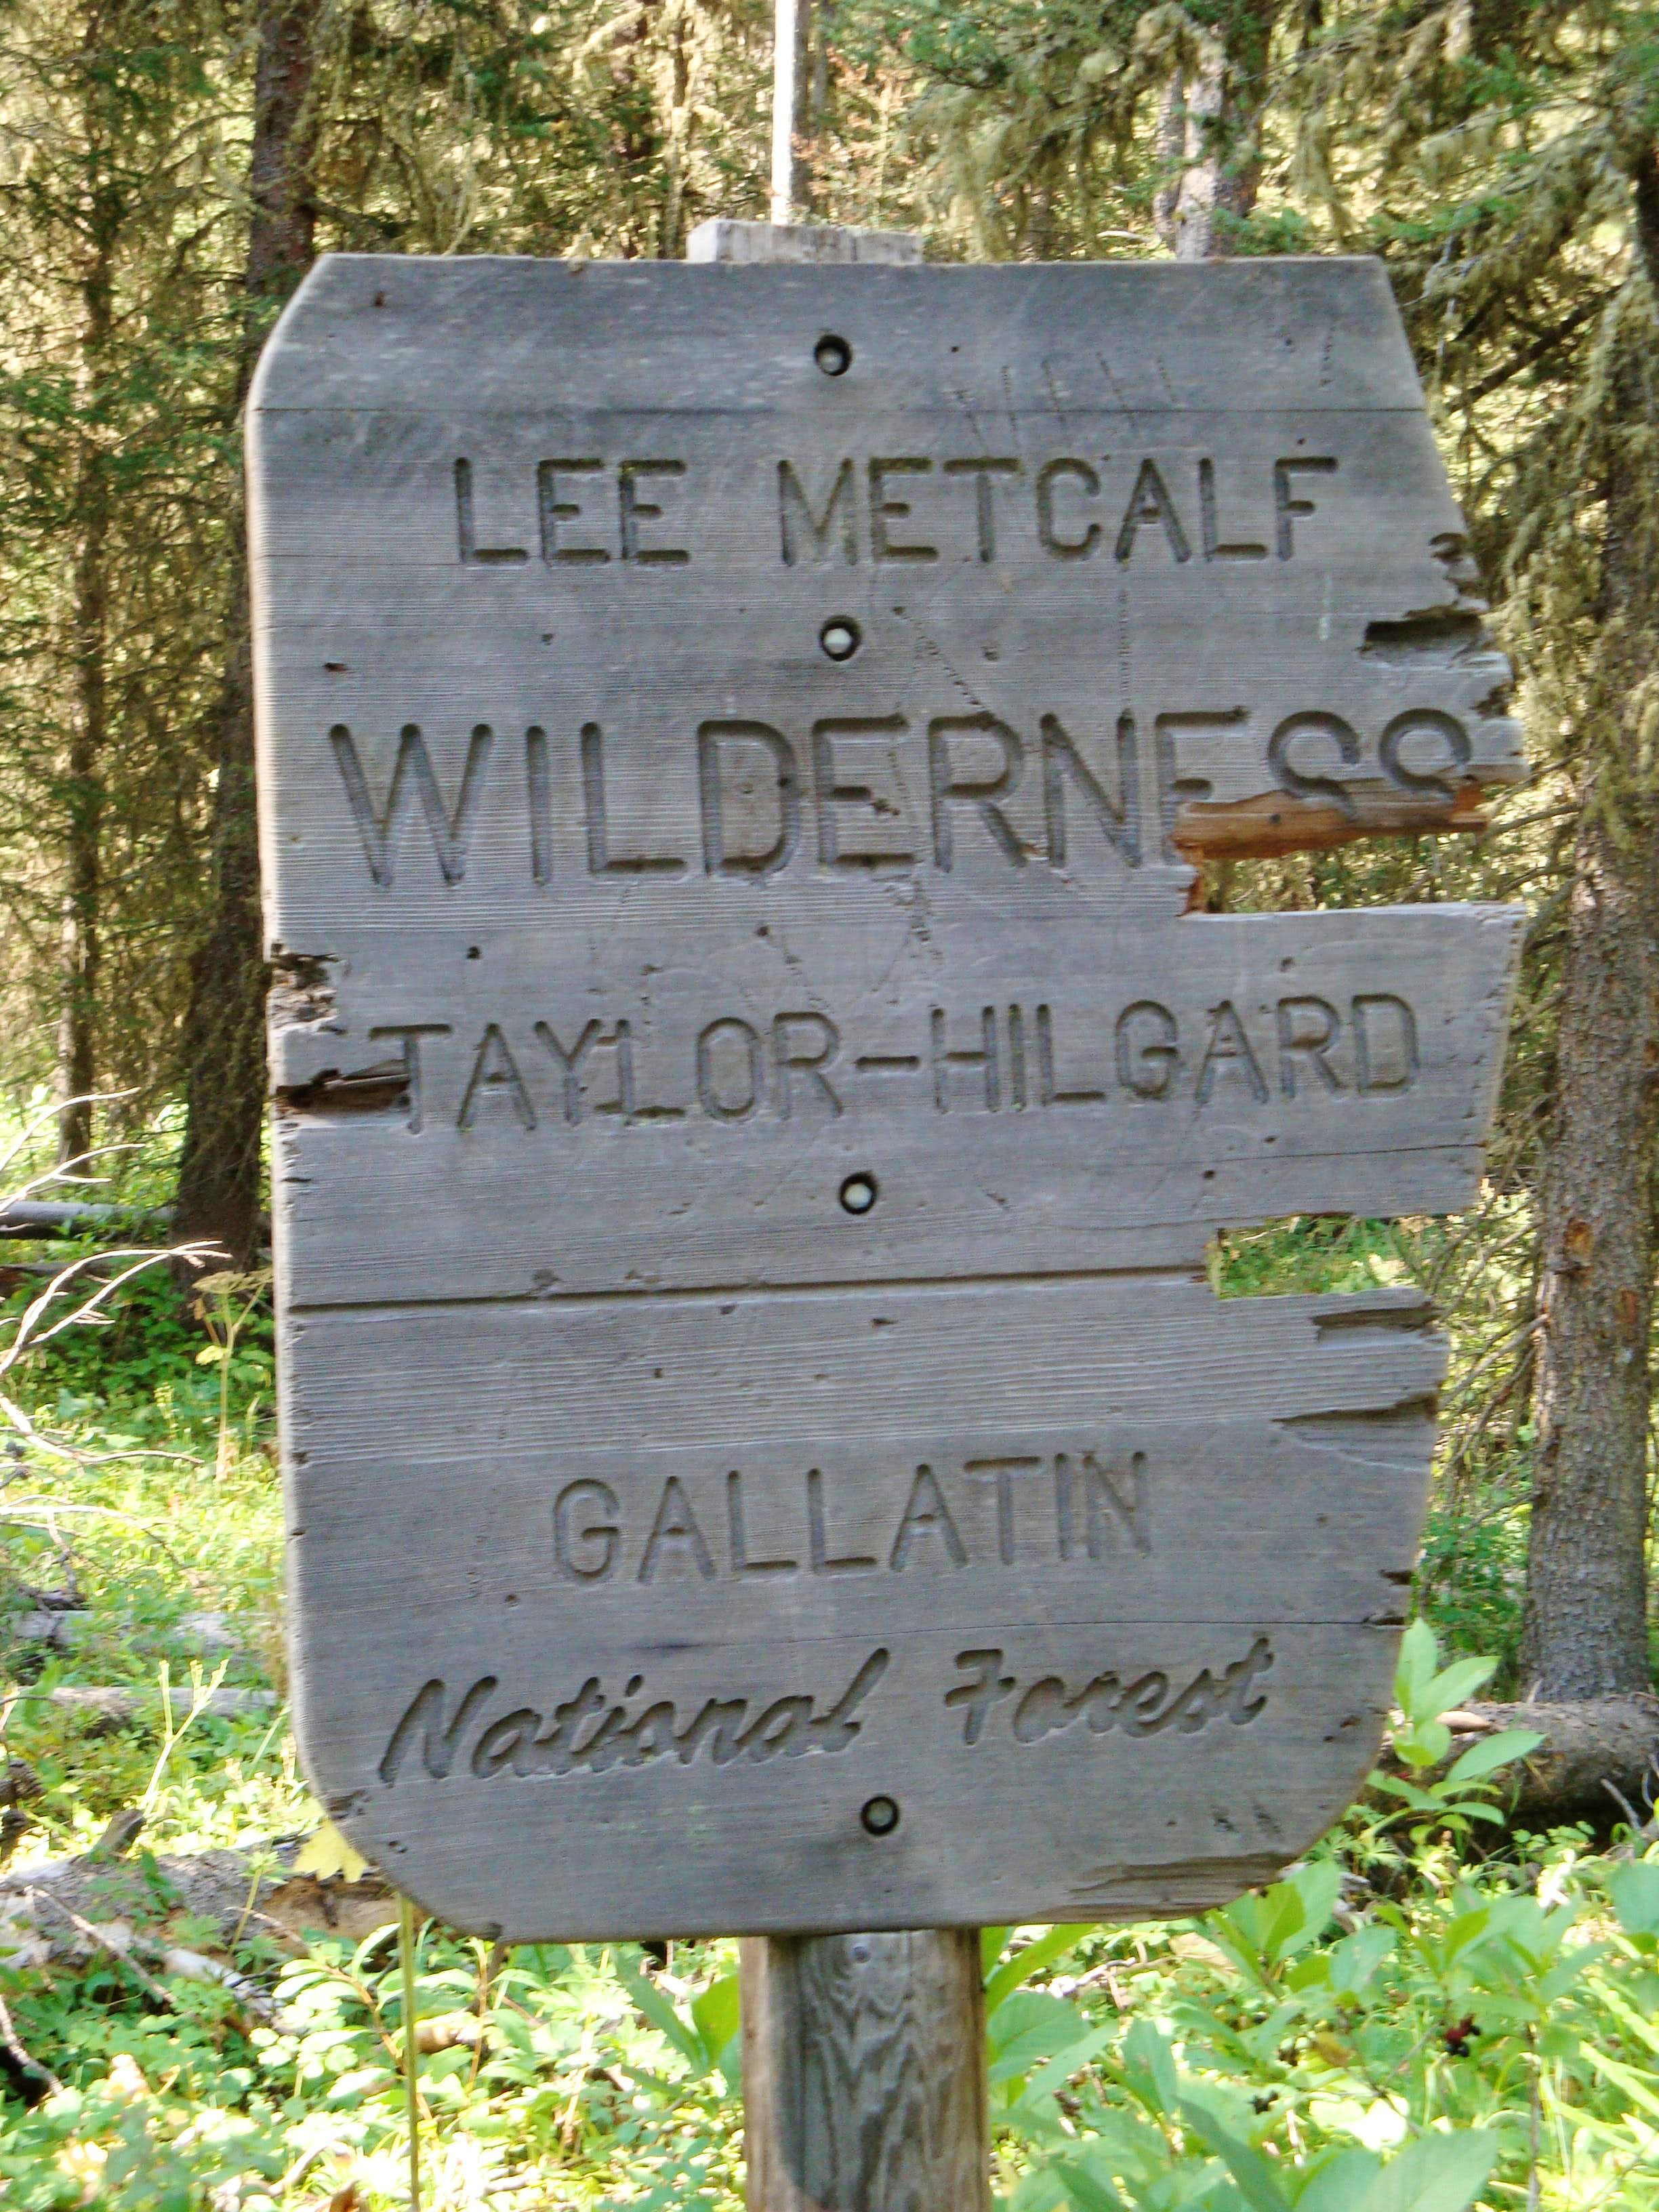 Lee Metcalf Wilderness Complex